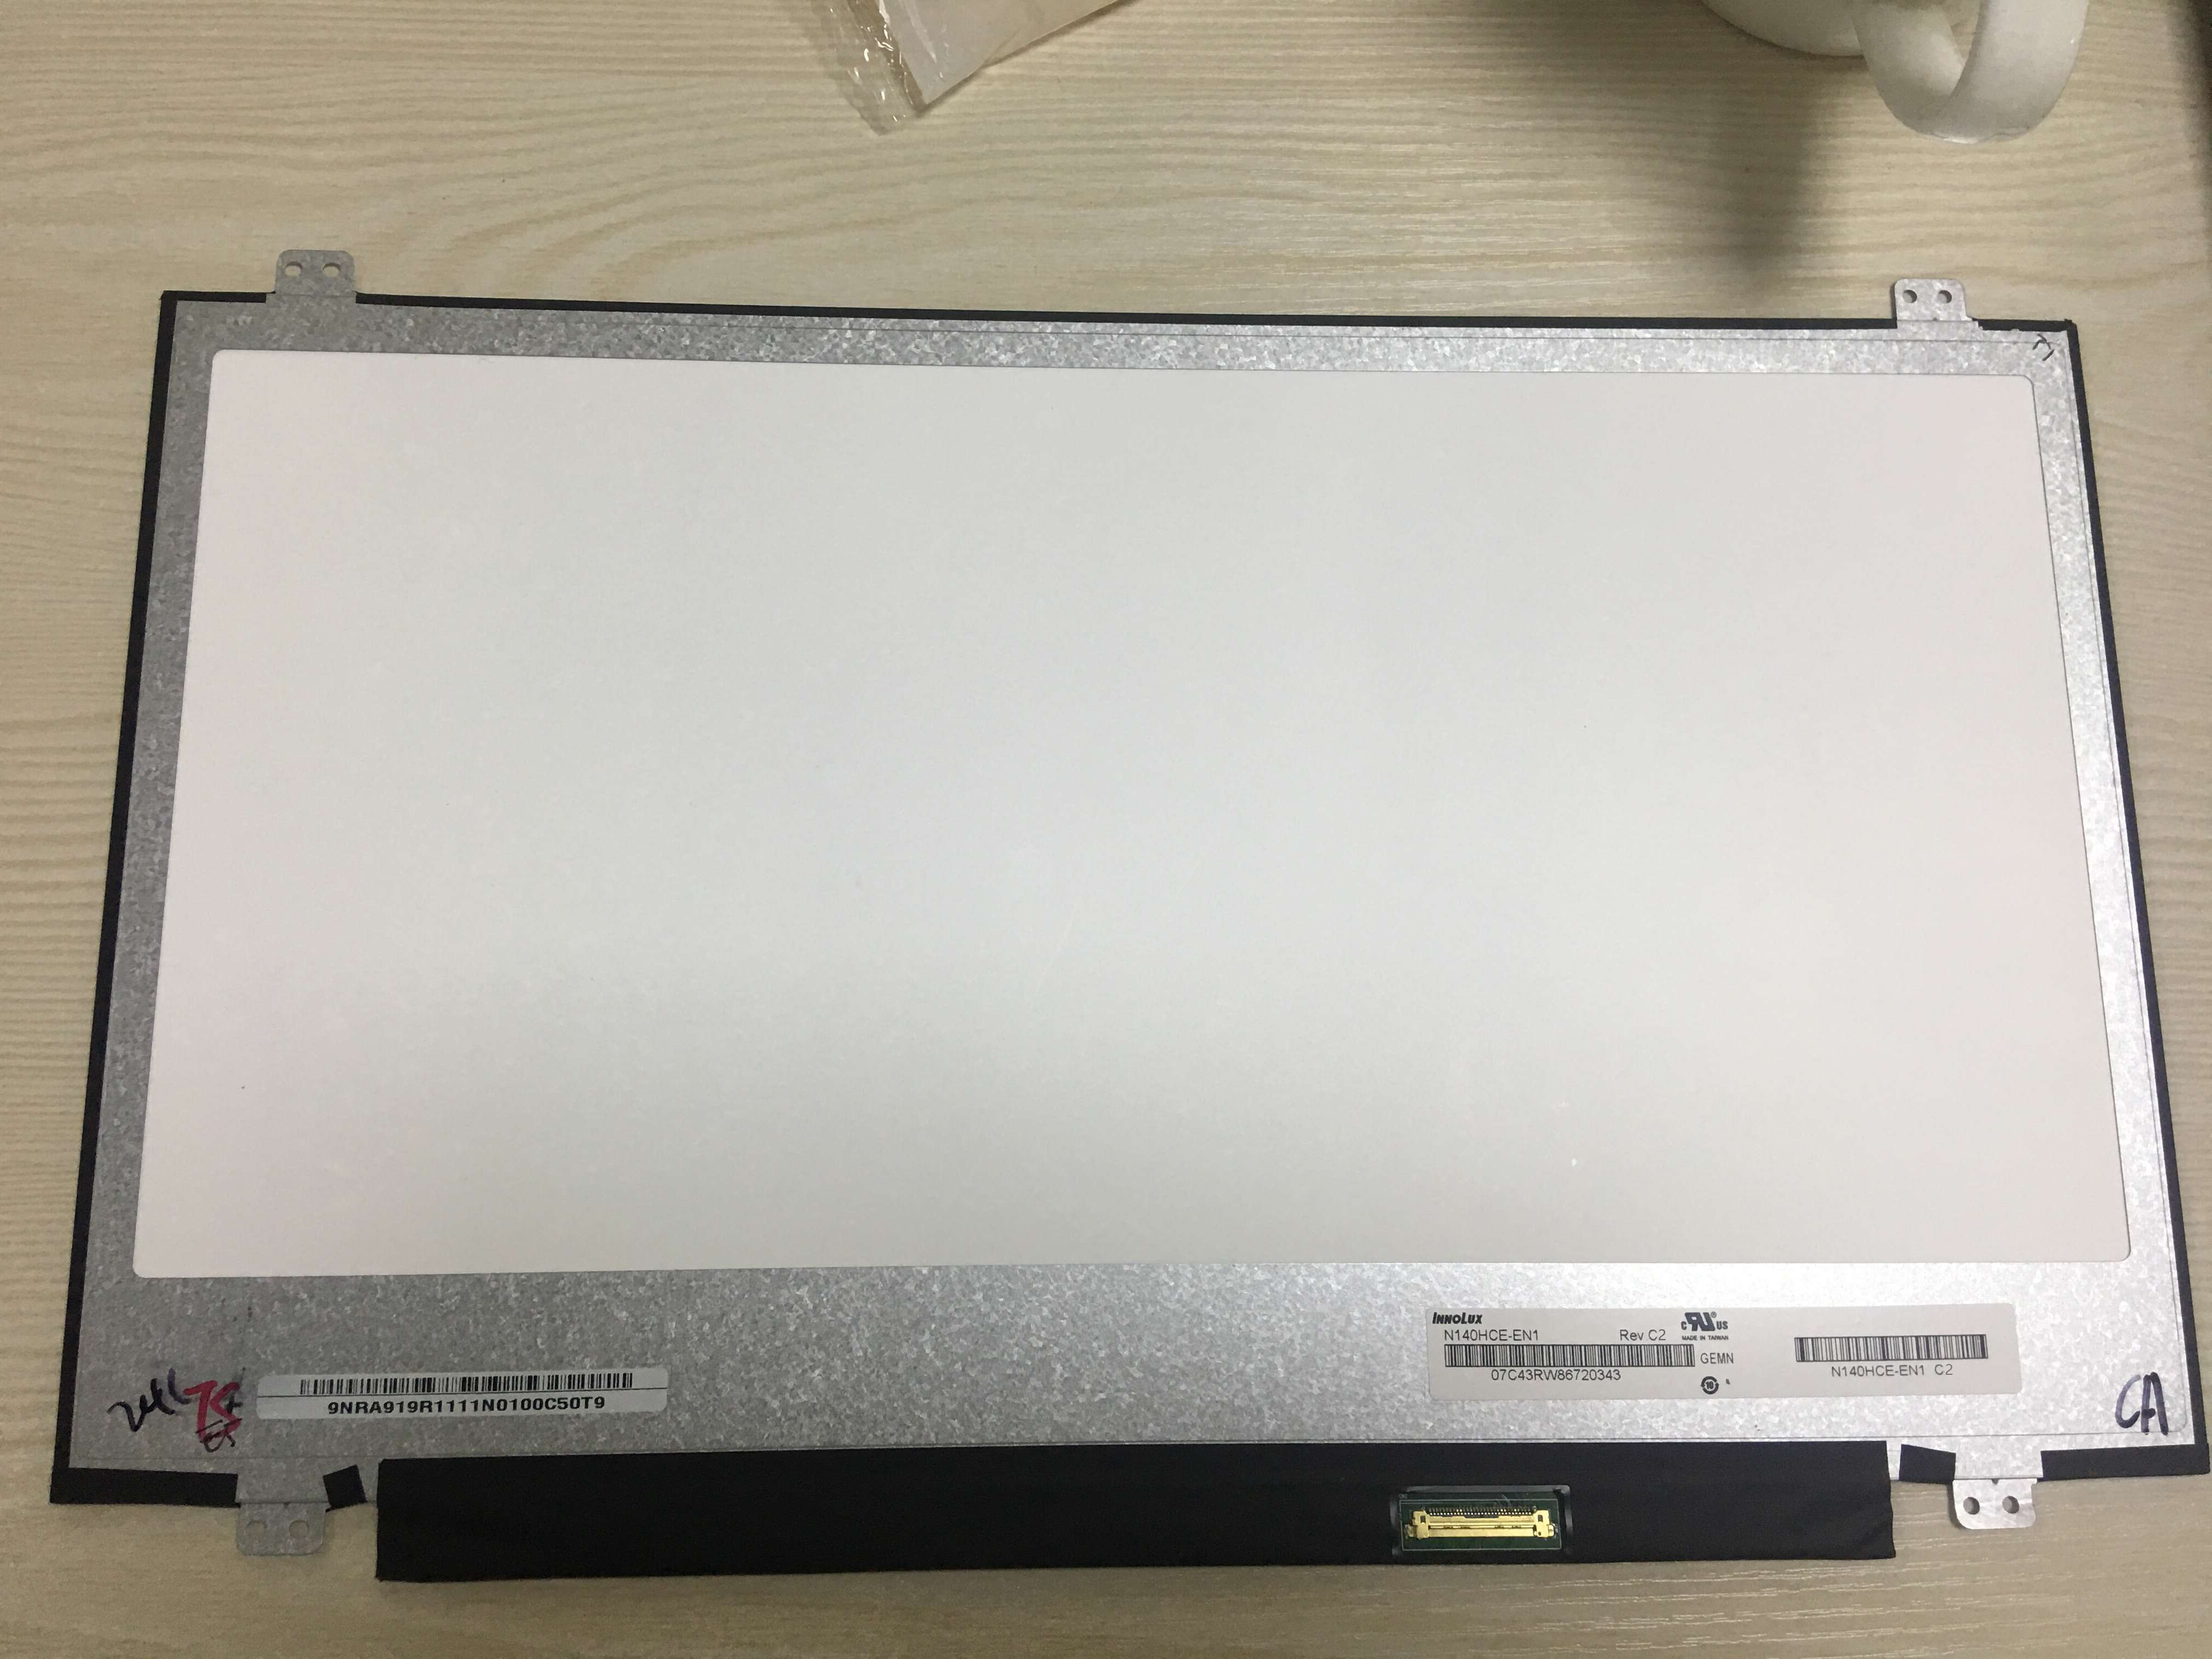 14 LED LCD Screen Display Panel Matrix Exact Model N140HCE EN1 Rev C2 IPS 72%NTS Tested Grade A+++C FHD-in Laptop LCD Screen from Computer & Office